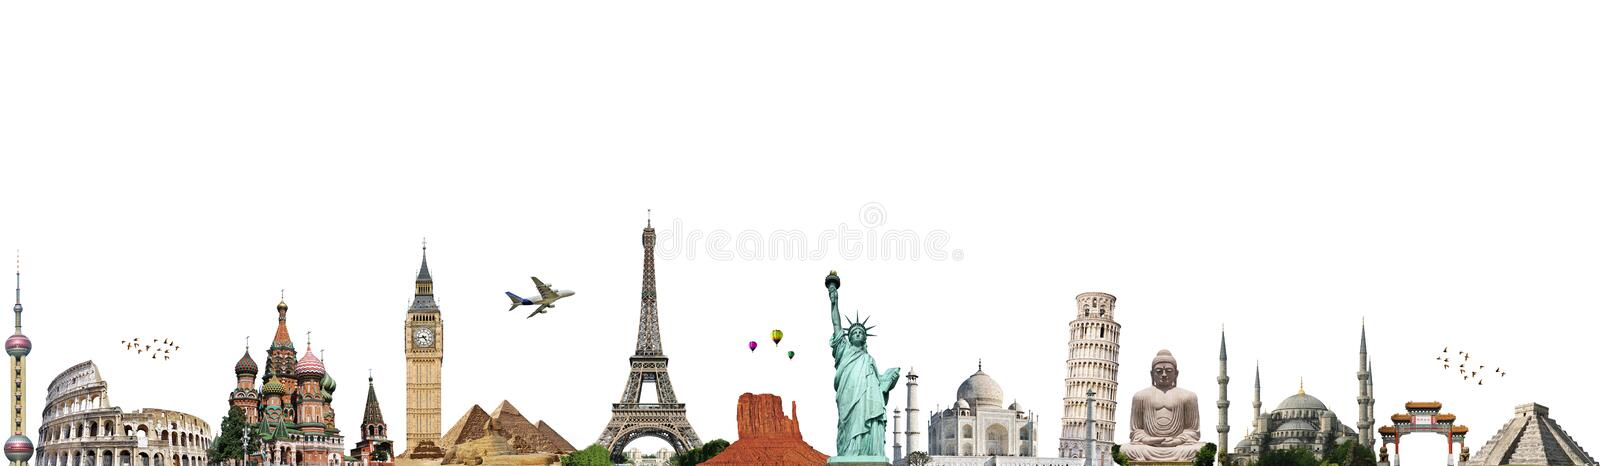 Travel the world monument concept. Famous monuments of the world illustrating the travel and holidays